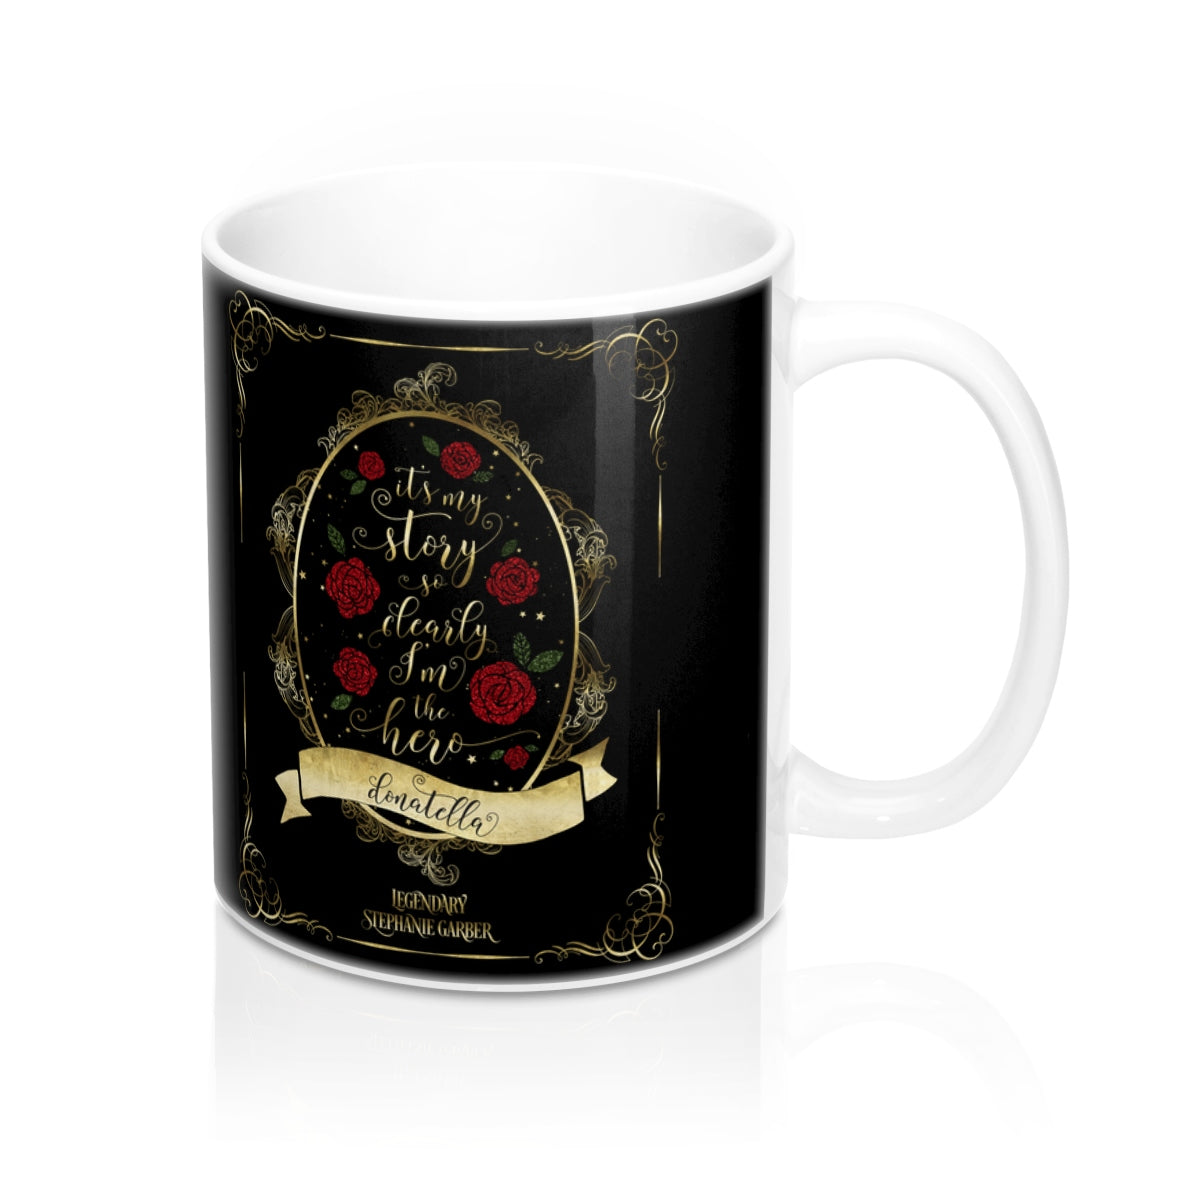 It's my story so clearly I'm the hero. Tella Quote Mug - LitLifeCo.